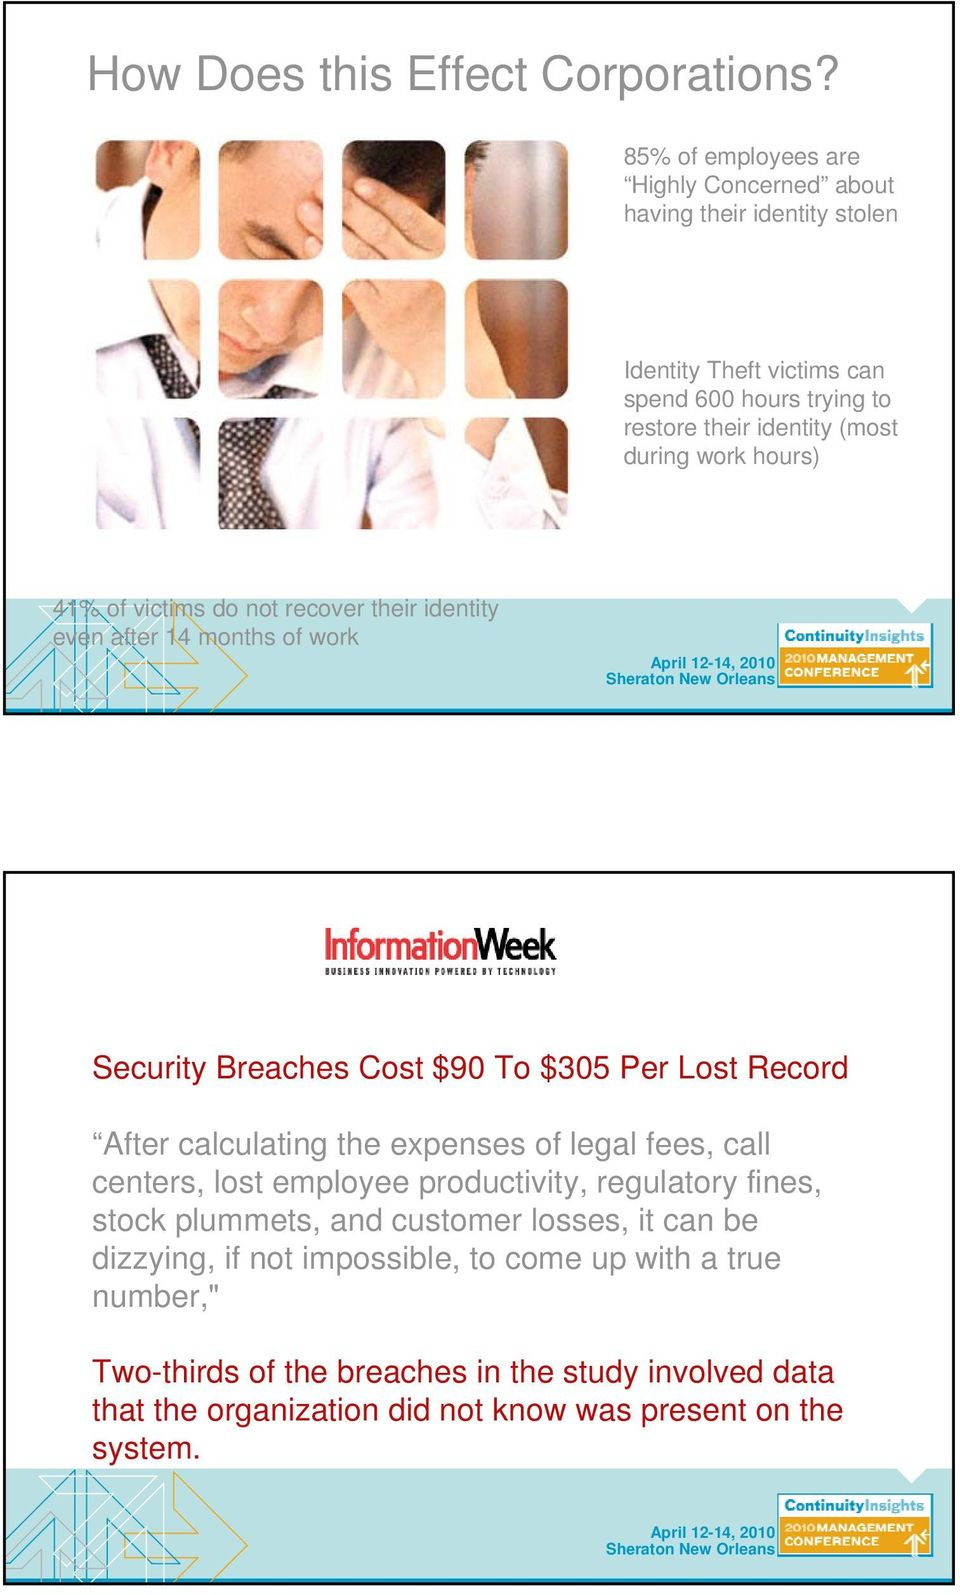 work hours) 41% of victims do not recover their identity even after 14 months of work Security Breaches Cost $90 To $305 Per Lost Record After calculating the